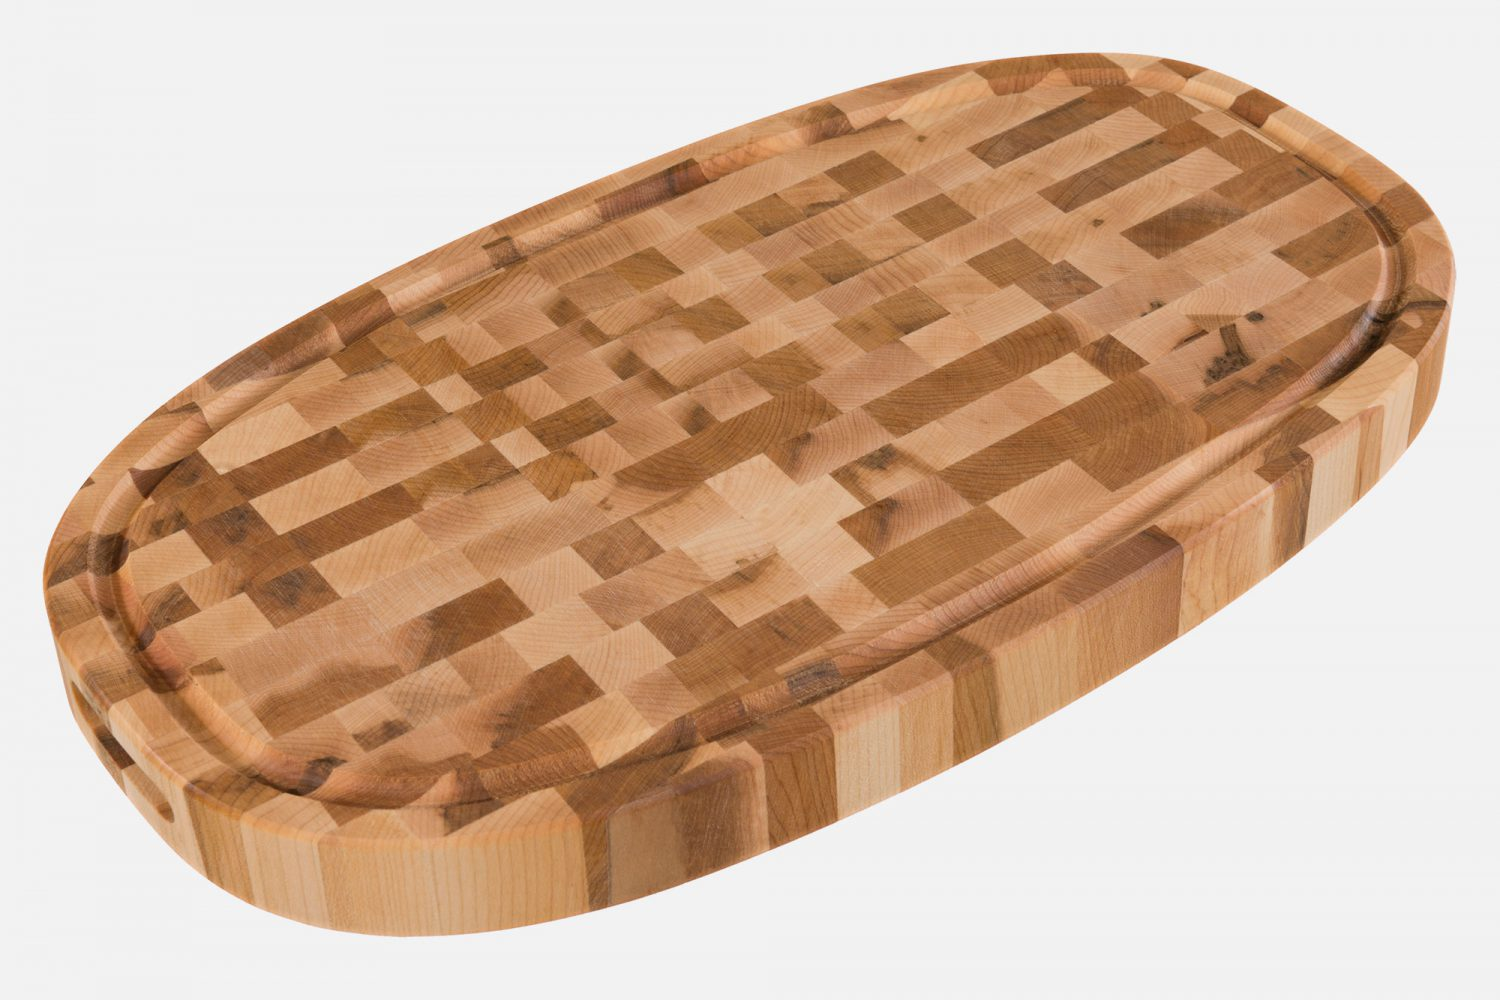 Oval butcher block with end grain